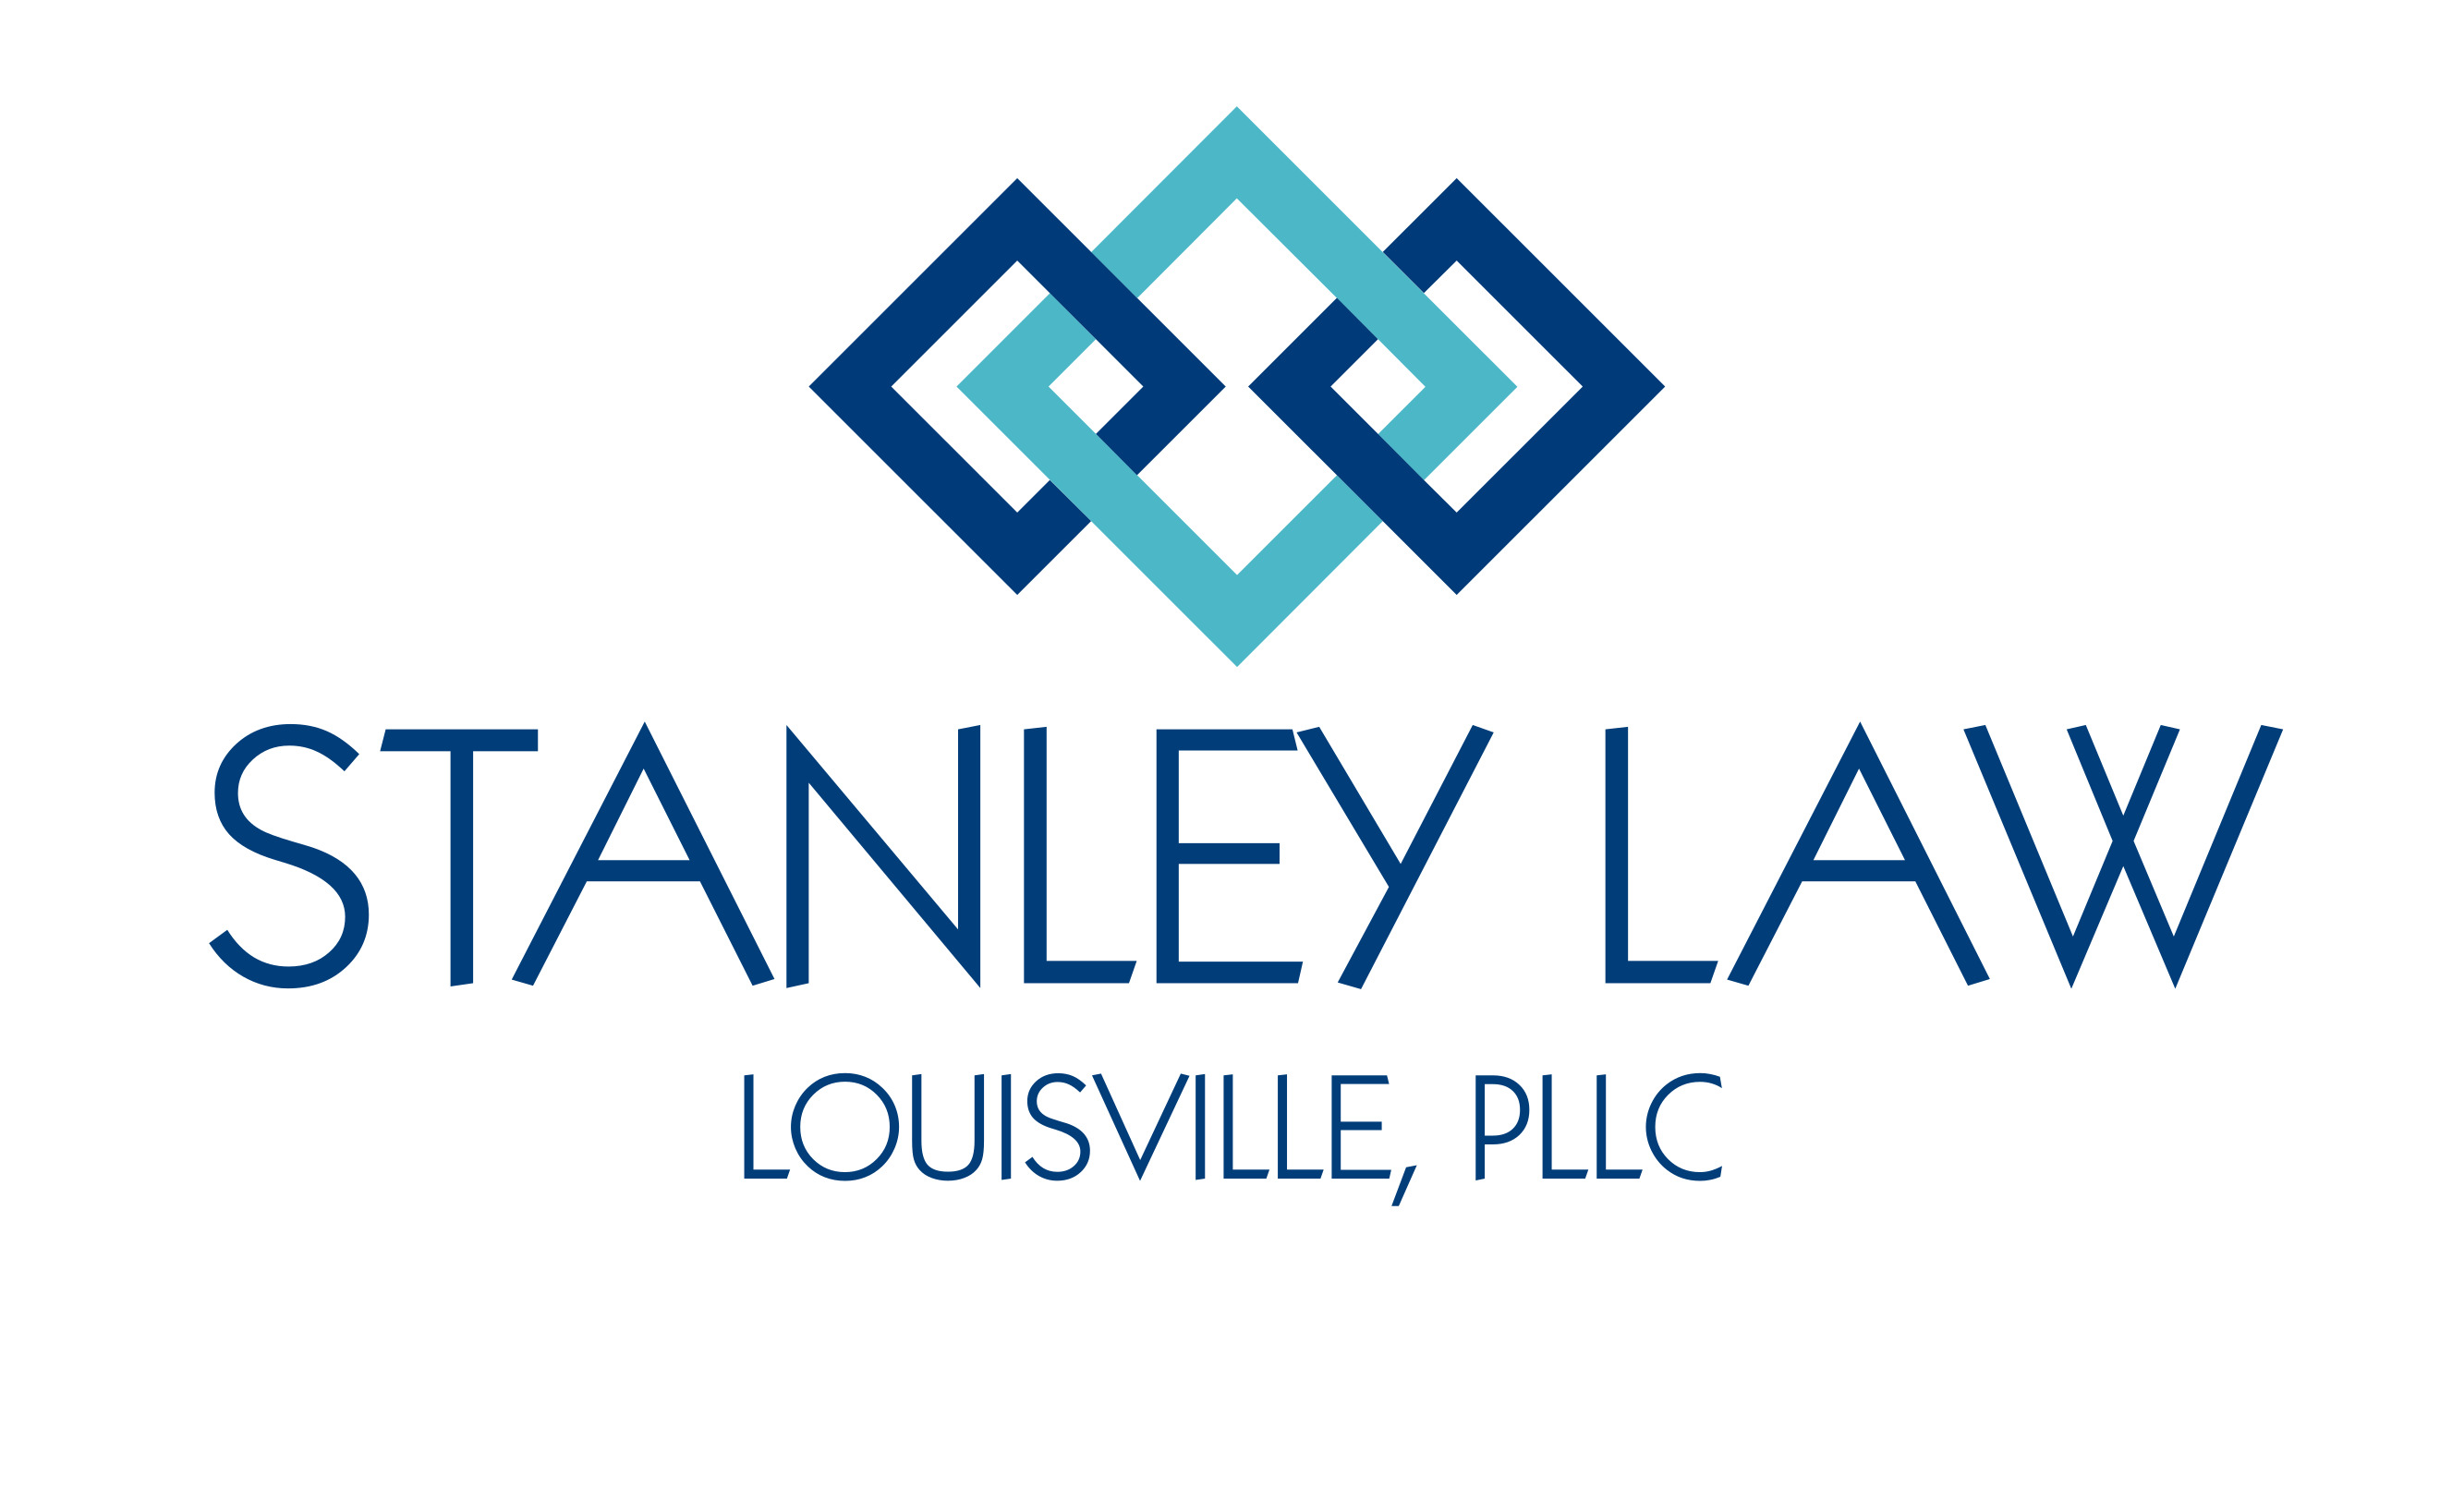 Stanley Law Louisville Logo.  Stanley Law Louisville is located in Louisville Kentucky and offers Estate Planning Services, Wills, Trusts, Probate, and other Law and Attorney Services, Molly Bee Stanley, Attorney at Law